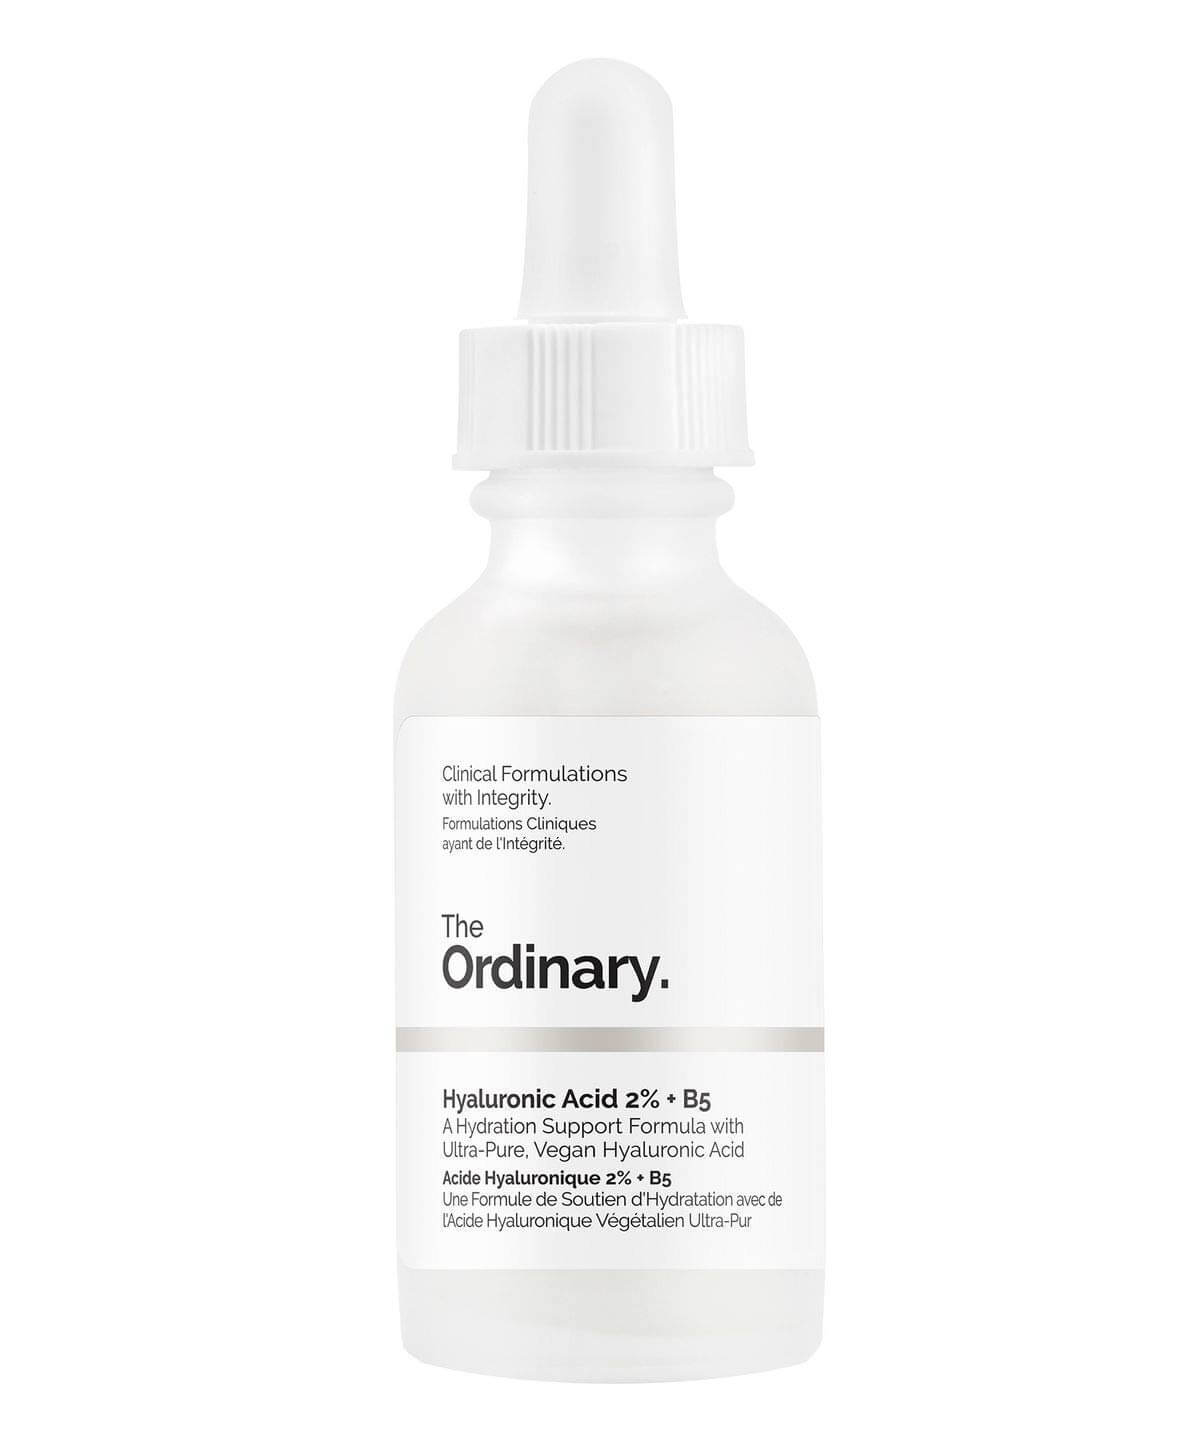 hyaluronic acid serum as an important product to achieve good skin